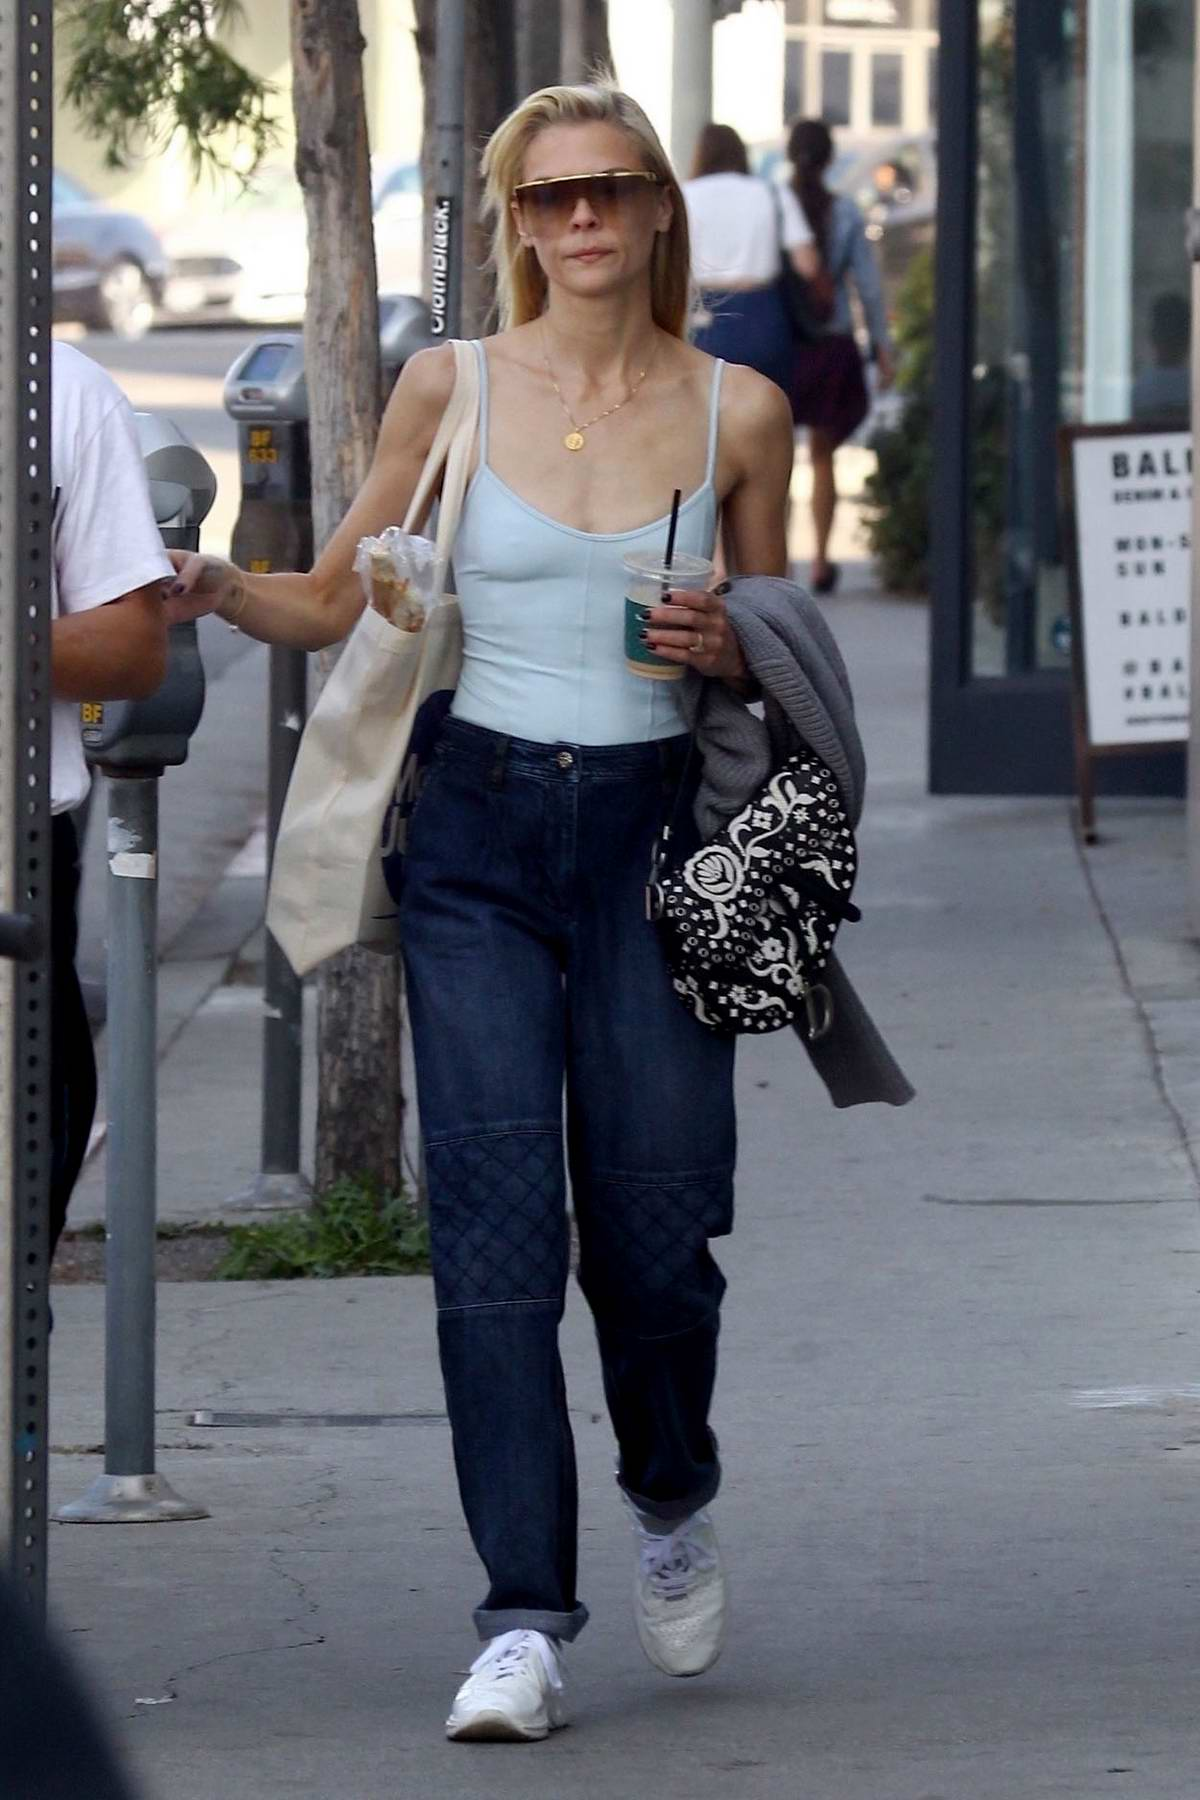 Jaime King steps out in a blue top and jeans while running errands in West Hollywood, Los Angeles